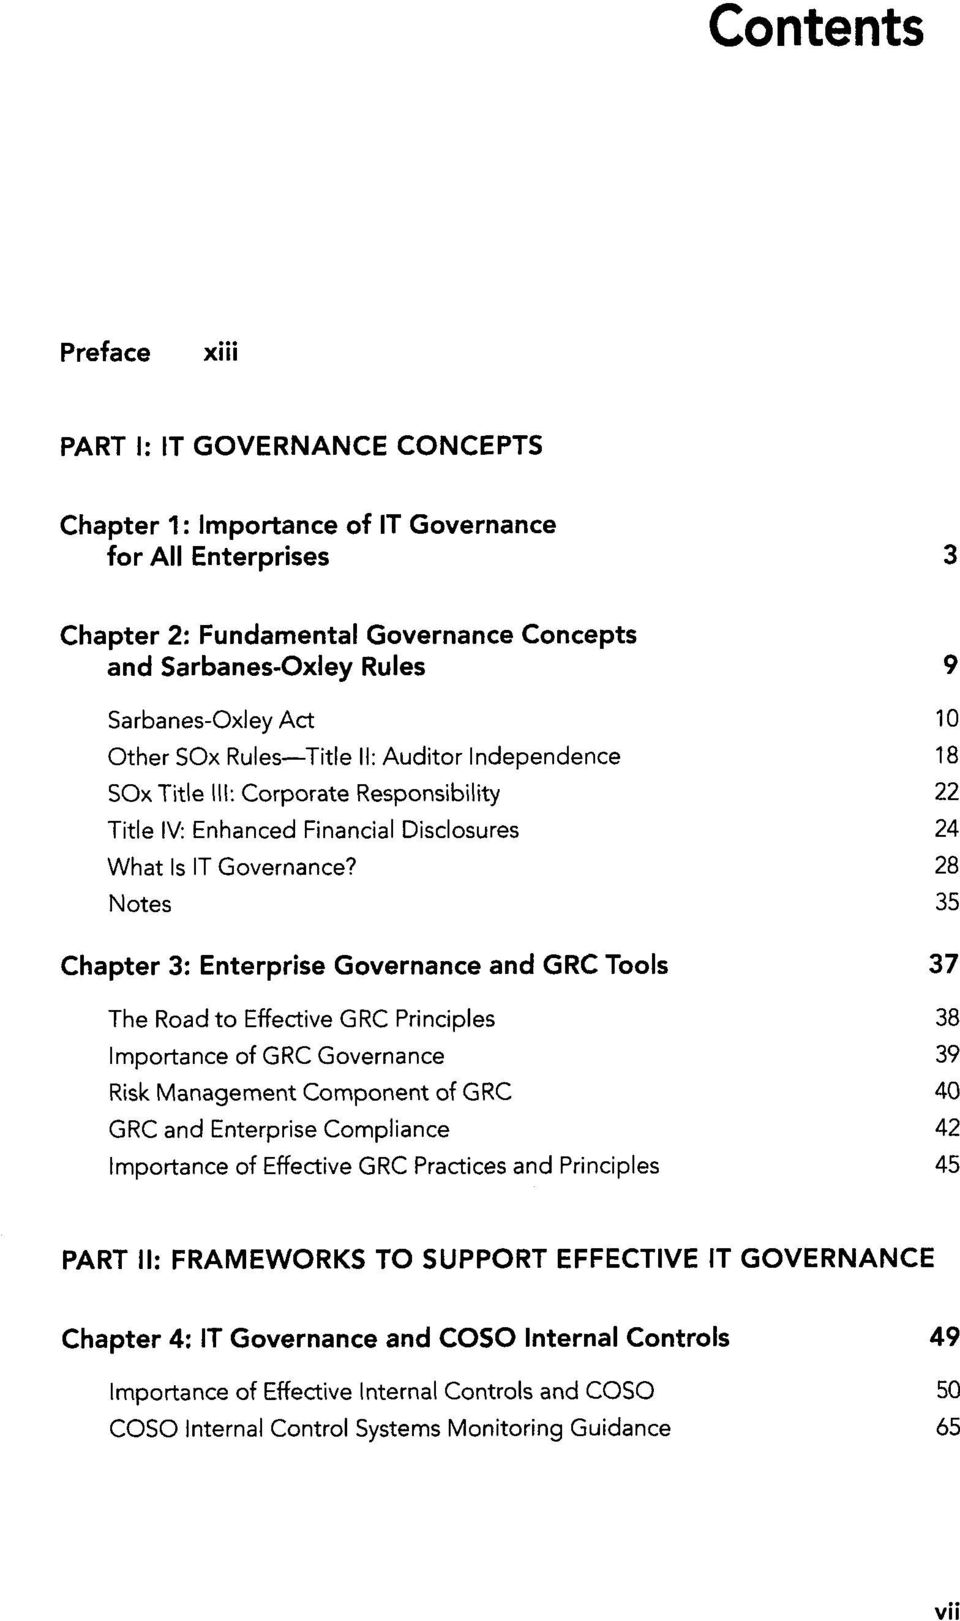 28 Notes 35 Chapter 3: Enterprise Governance and GRC Tools 37 The Road to Effective GRC Principles 38 Importance of GRC Governance 39 Risk Management Component of GRC 40 GRC and Enterprise Compliance